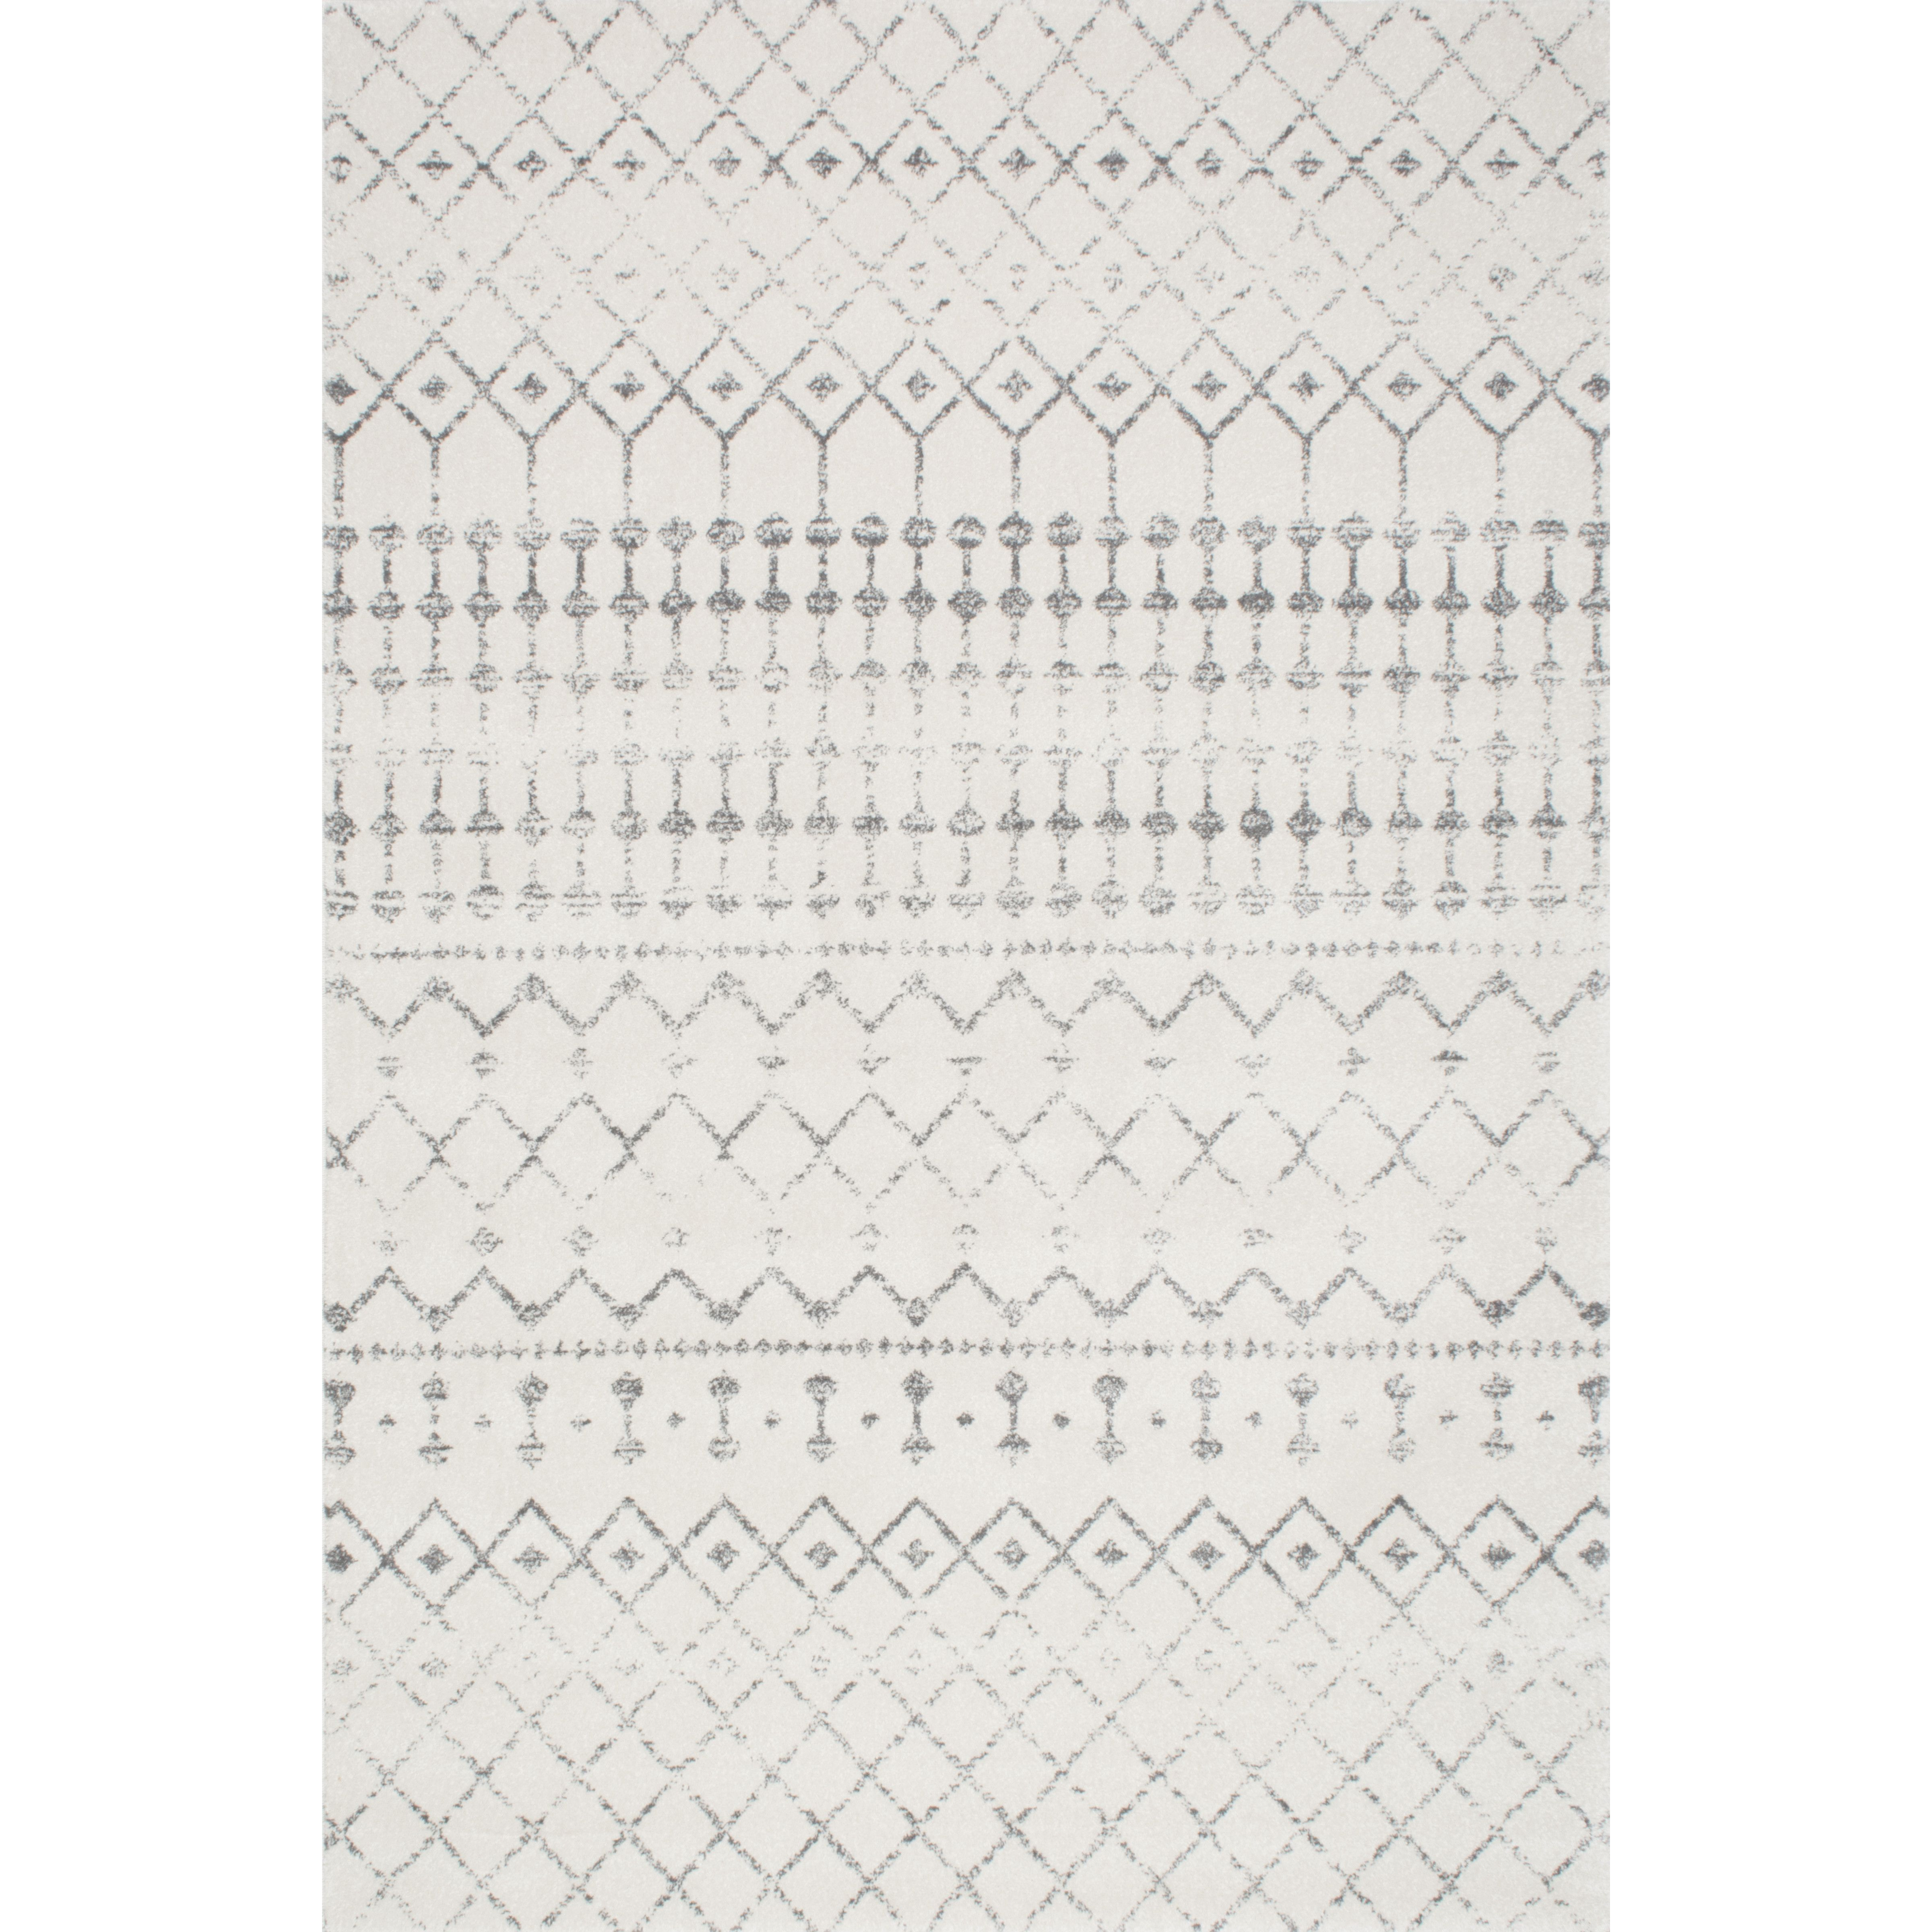 You'll love the Blythe Gray Area Rug at Wayfair - Great Deals on all Décor products with Free Shipping on most stuff, even the big stuff.